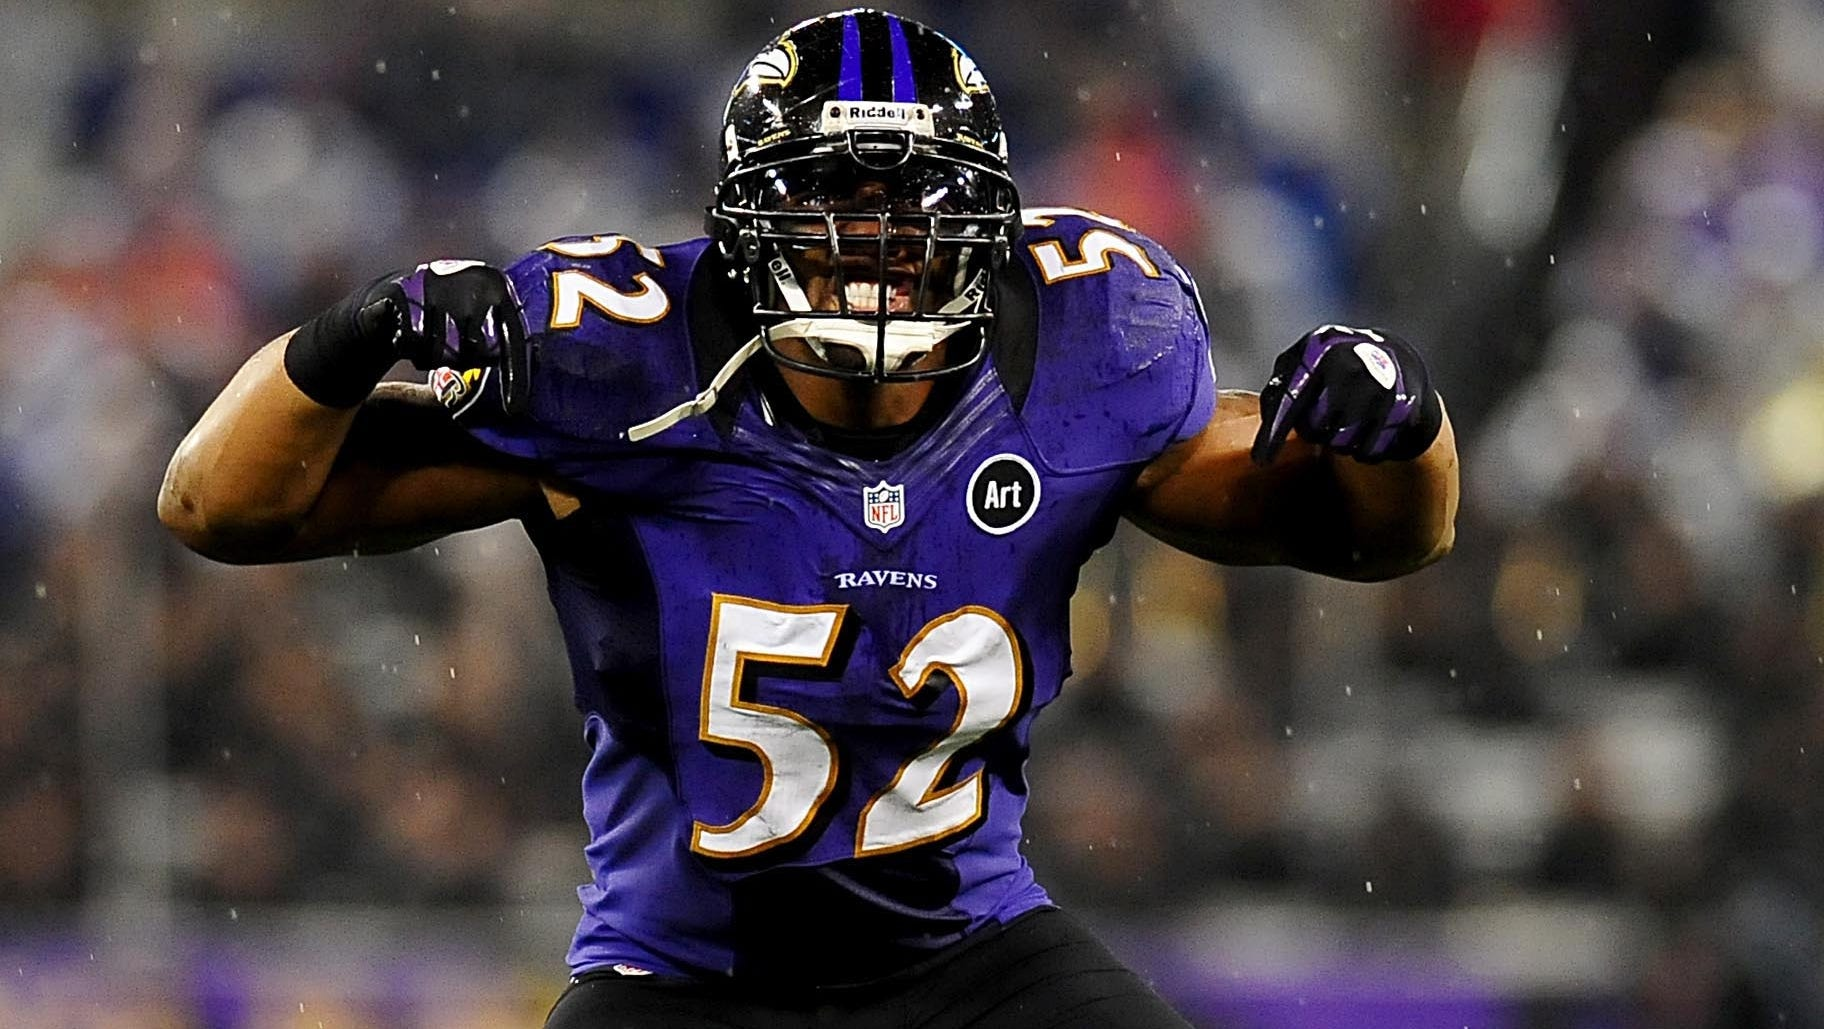 Ravens linebacker Ray Lewis lost for the season